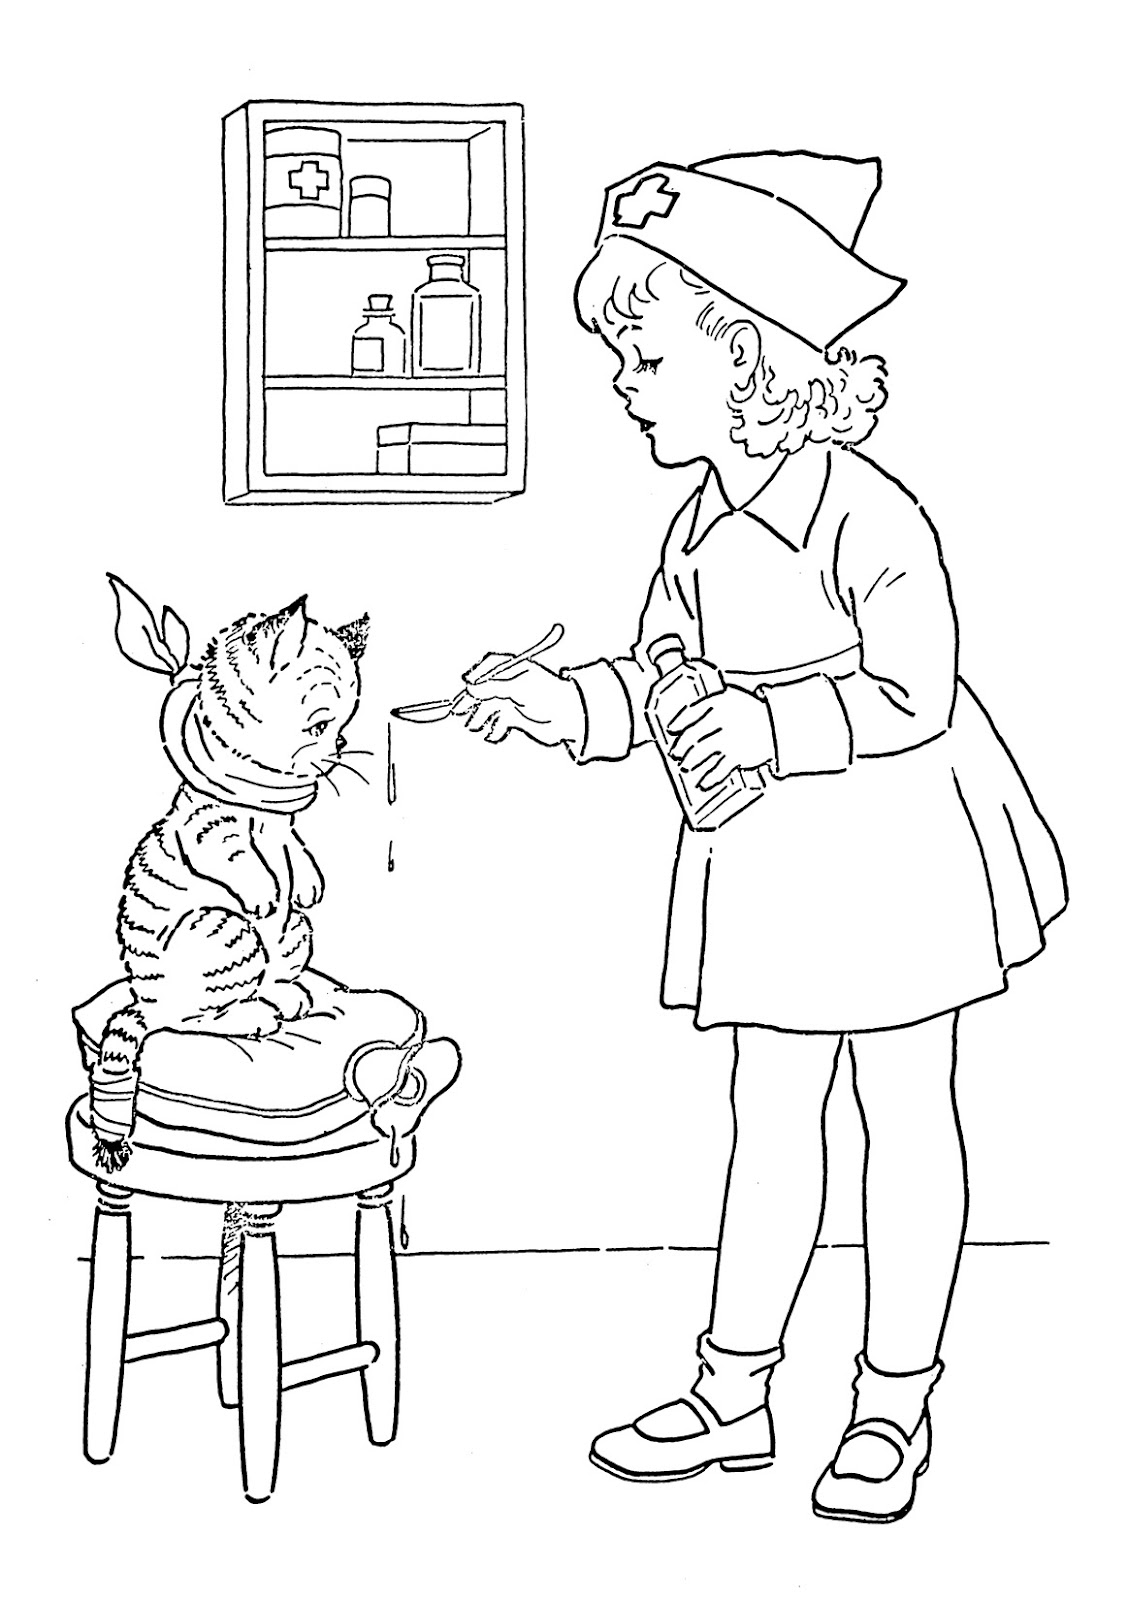 Coloring pages 7 year olds - Printable Nursing Coloring Pages 7 Coloringspace Com